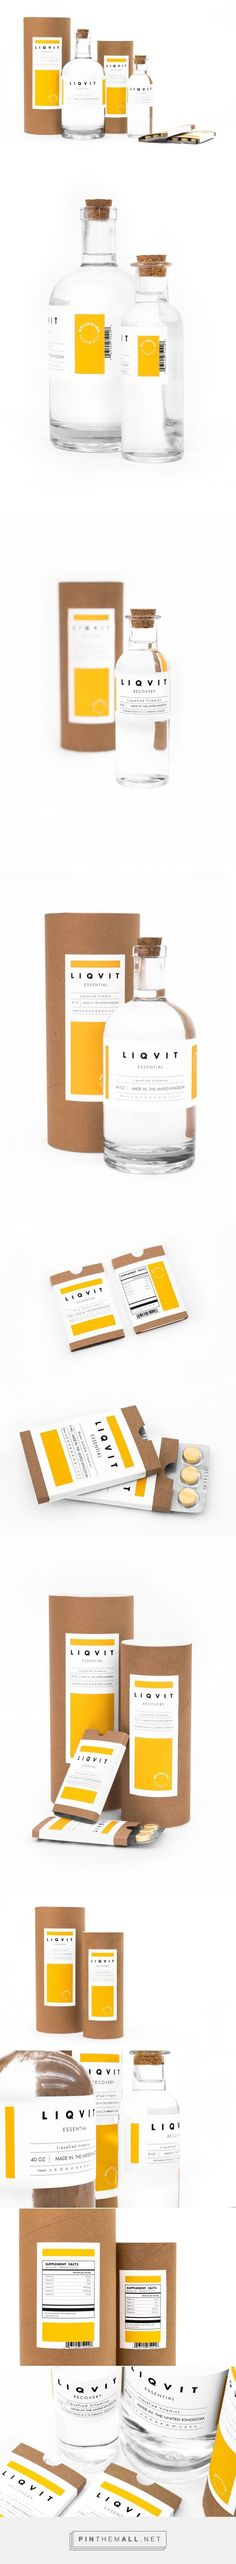 Liqvit Vitamin Packaging by Herman O. Awuku | Fivestar Branding Agency – Design and Branding Agency & Curated Inspiration Gallery